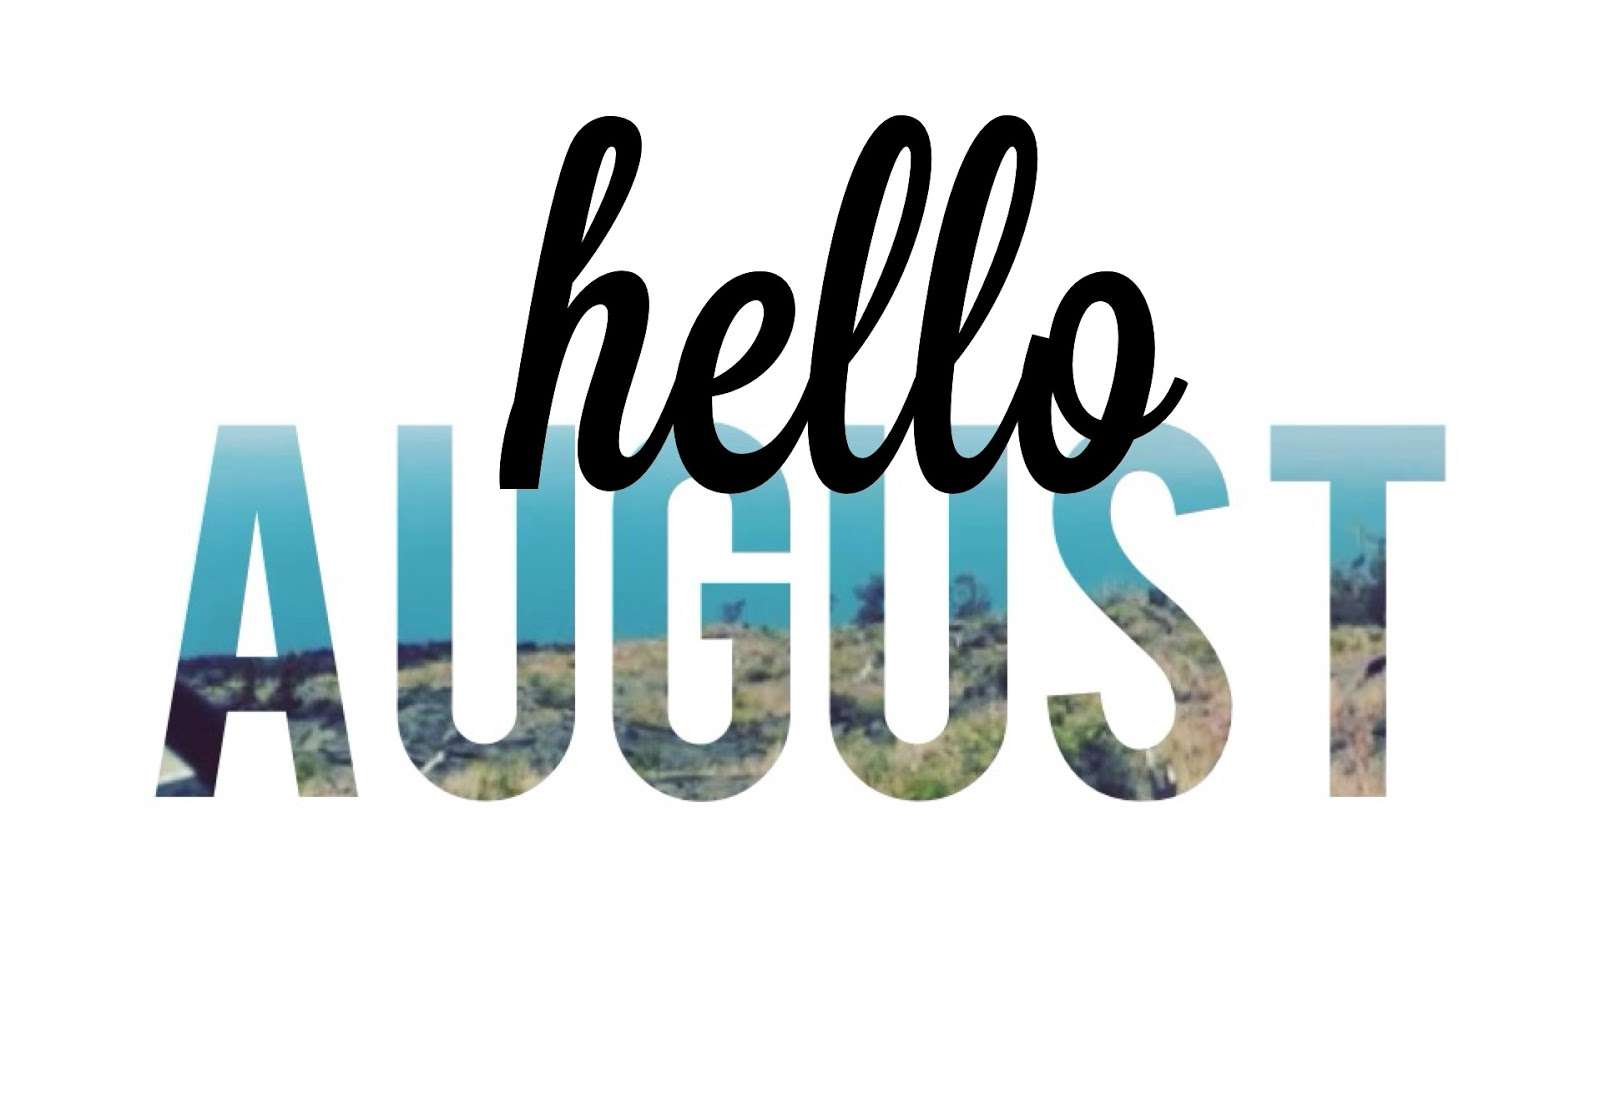 Olomoinfo blog wishes you a happy new month of august olomoinfo olomoinfo blog wishes you a happy new month of august m4hsunfo Gallery